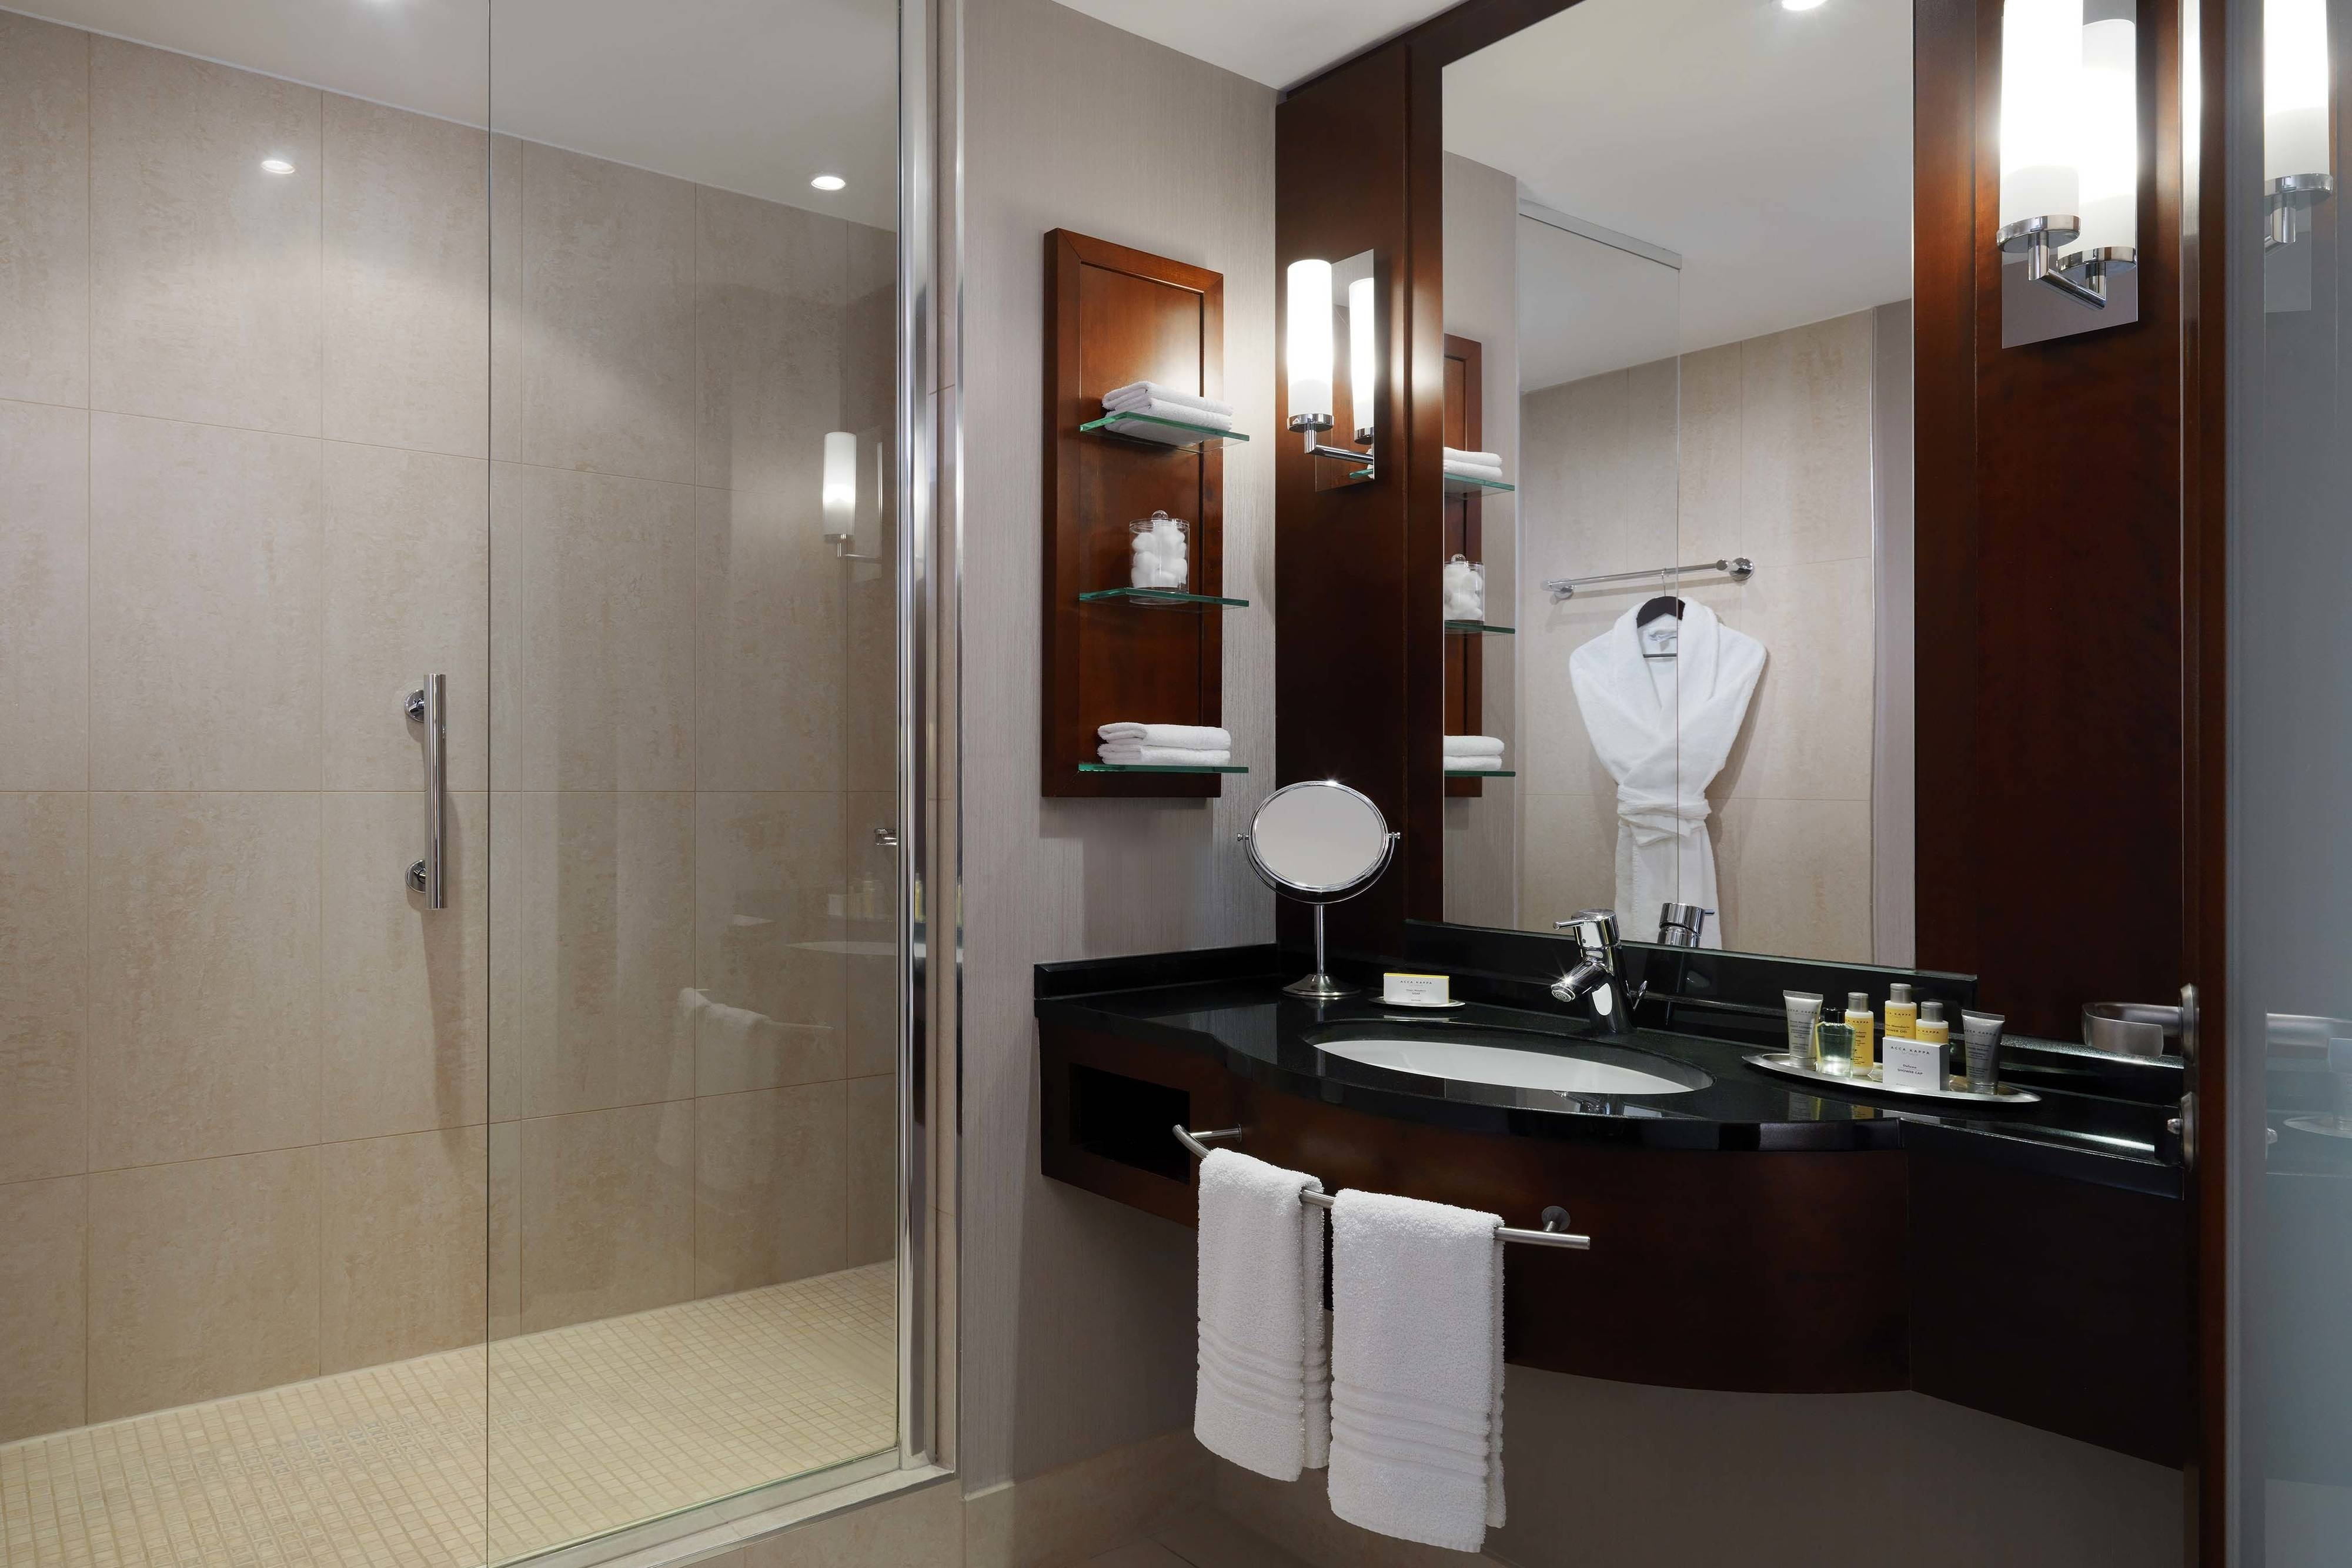 Executive Room with step-in-shower